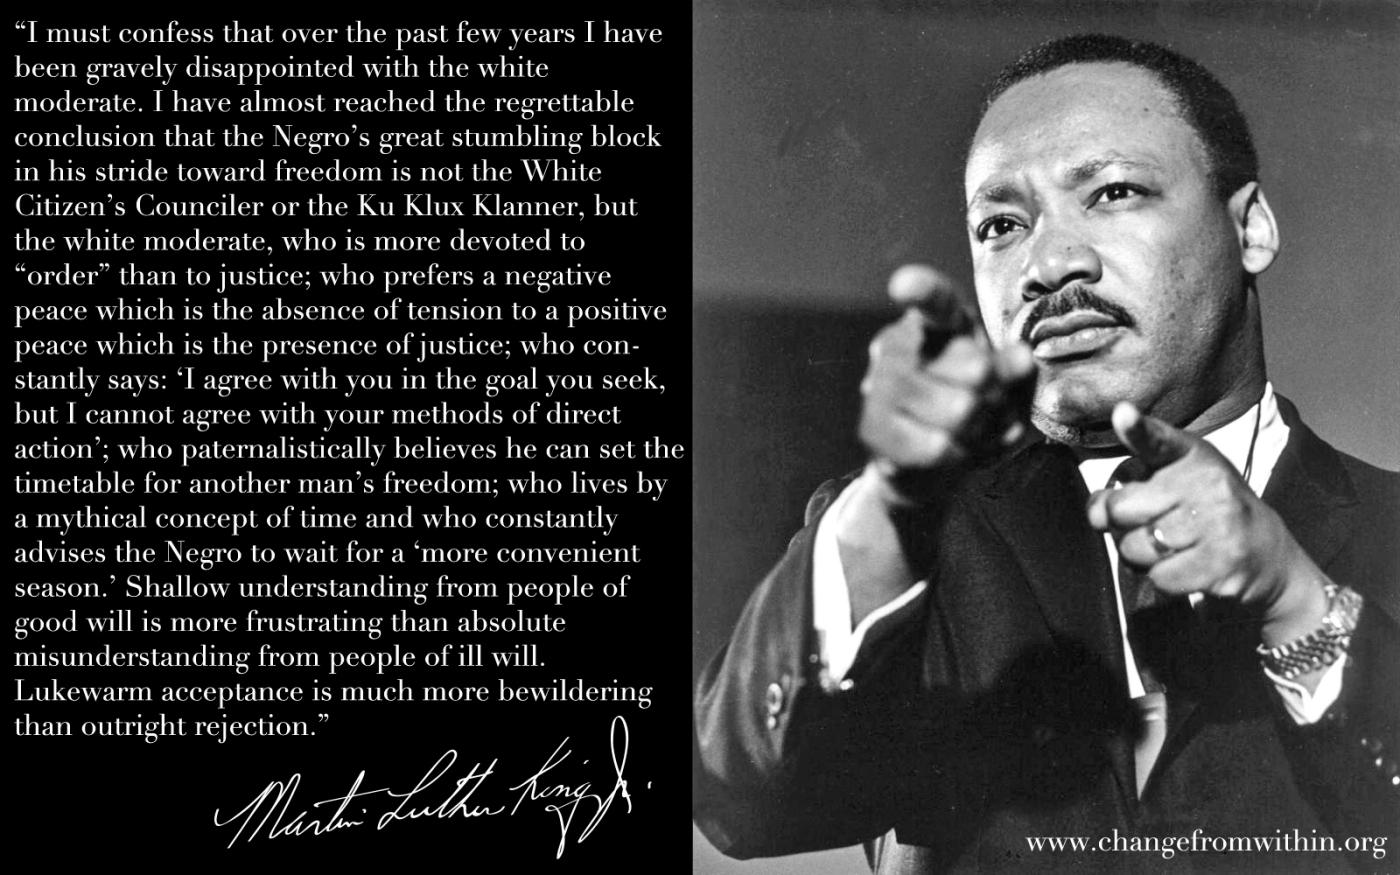 """I must confess that over the past few years I have been gravely disappointed with the white moderate."" – Dr. Martin Luther King, Jr. [1400×875]"